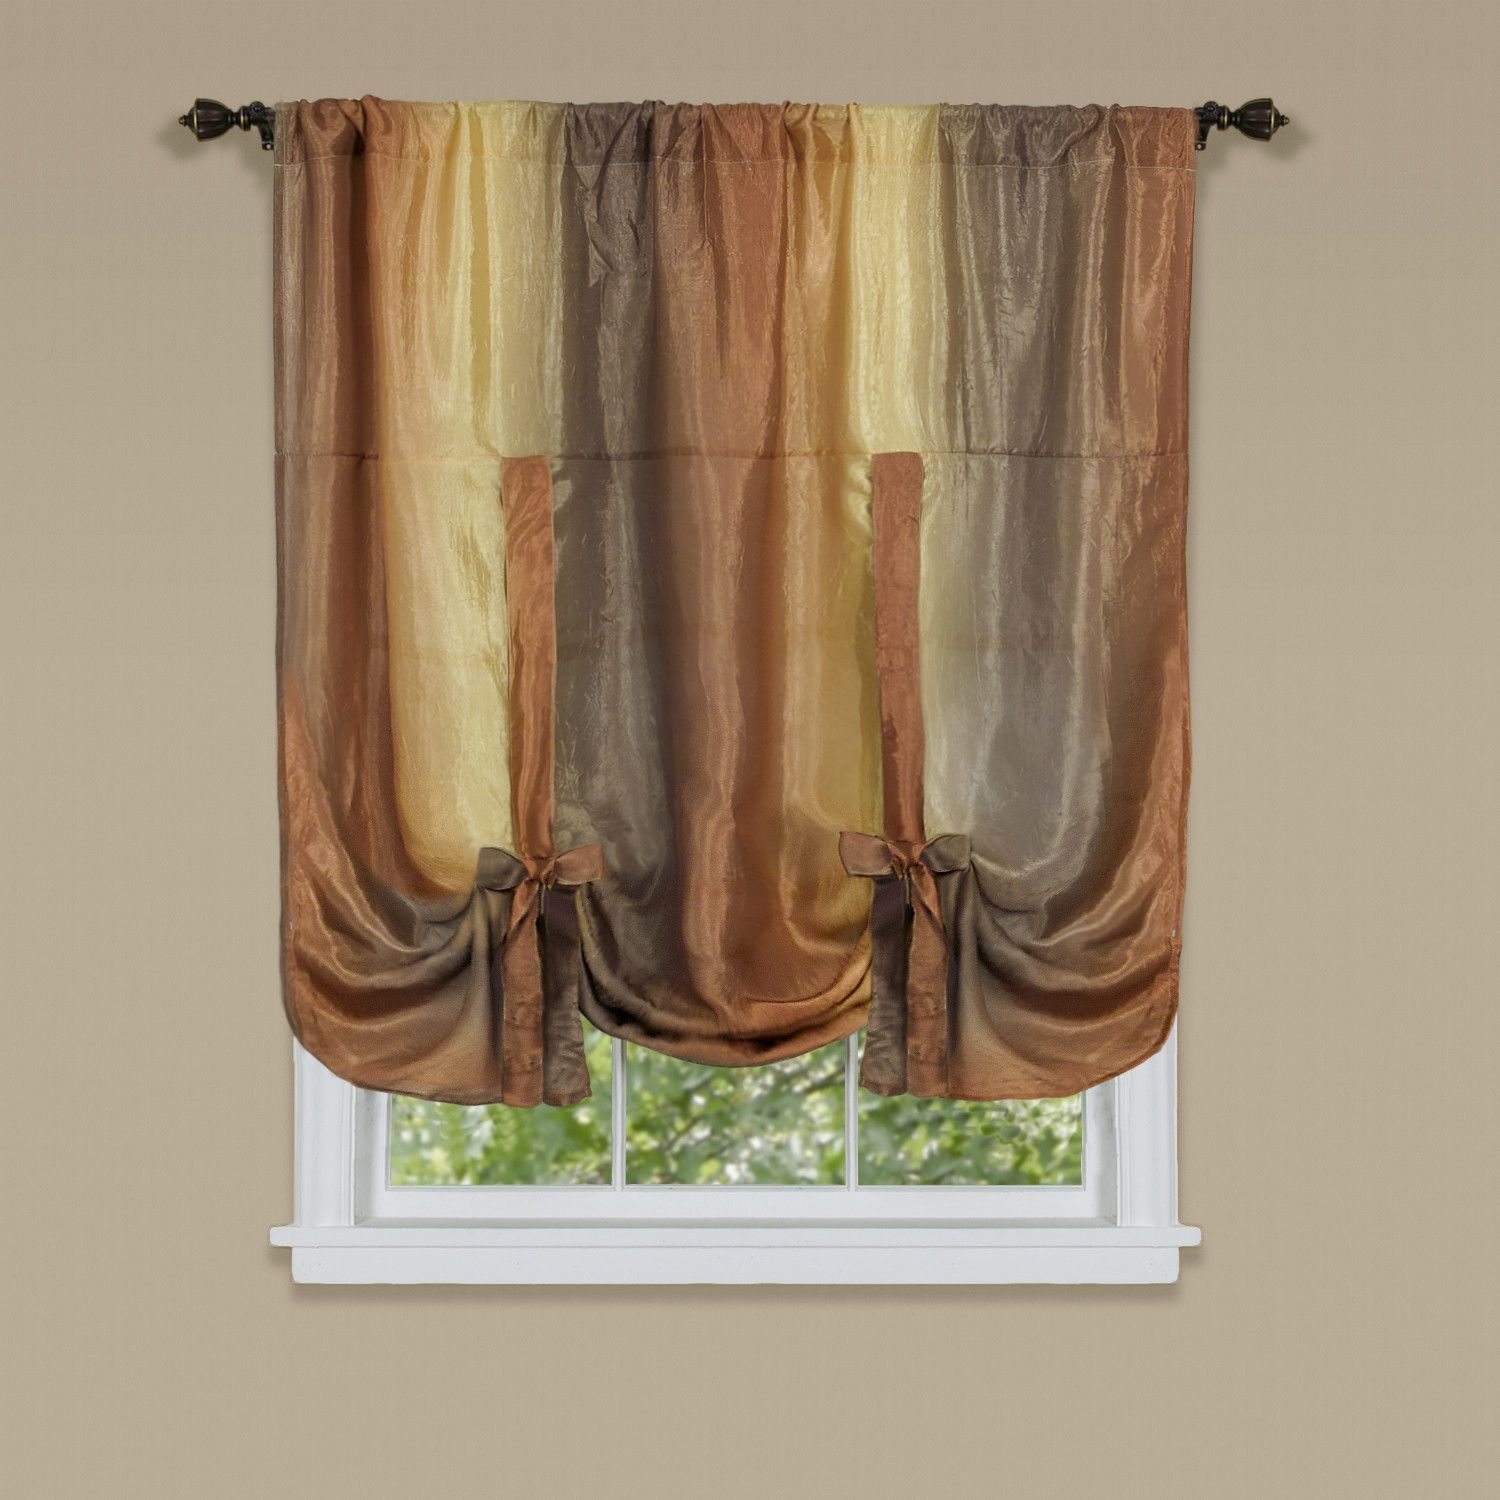 Ombre tieup valance products pinterest valance and products